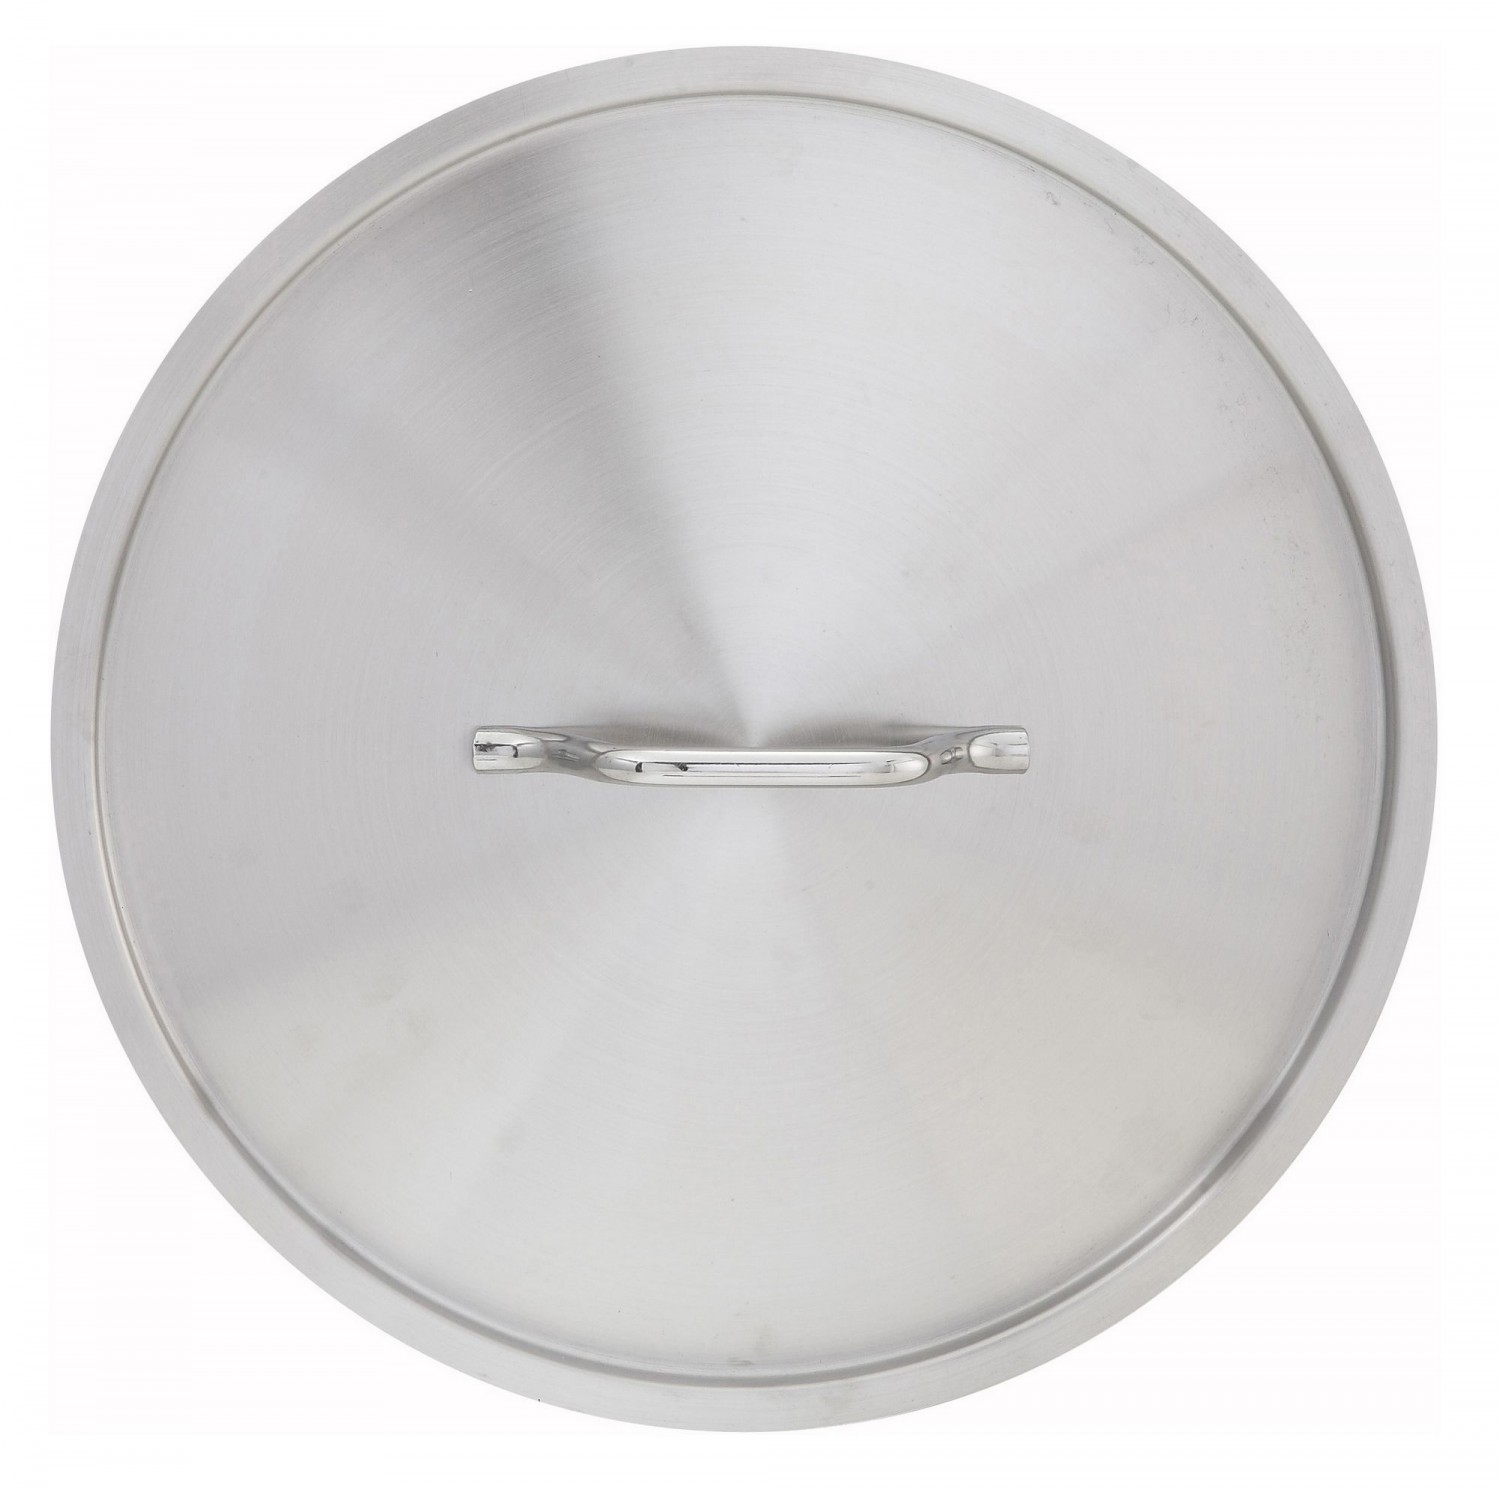 Winco SSTC-80 Stainless Steel Cover for SST-80, SSLB-30